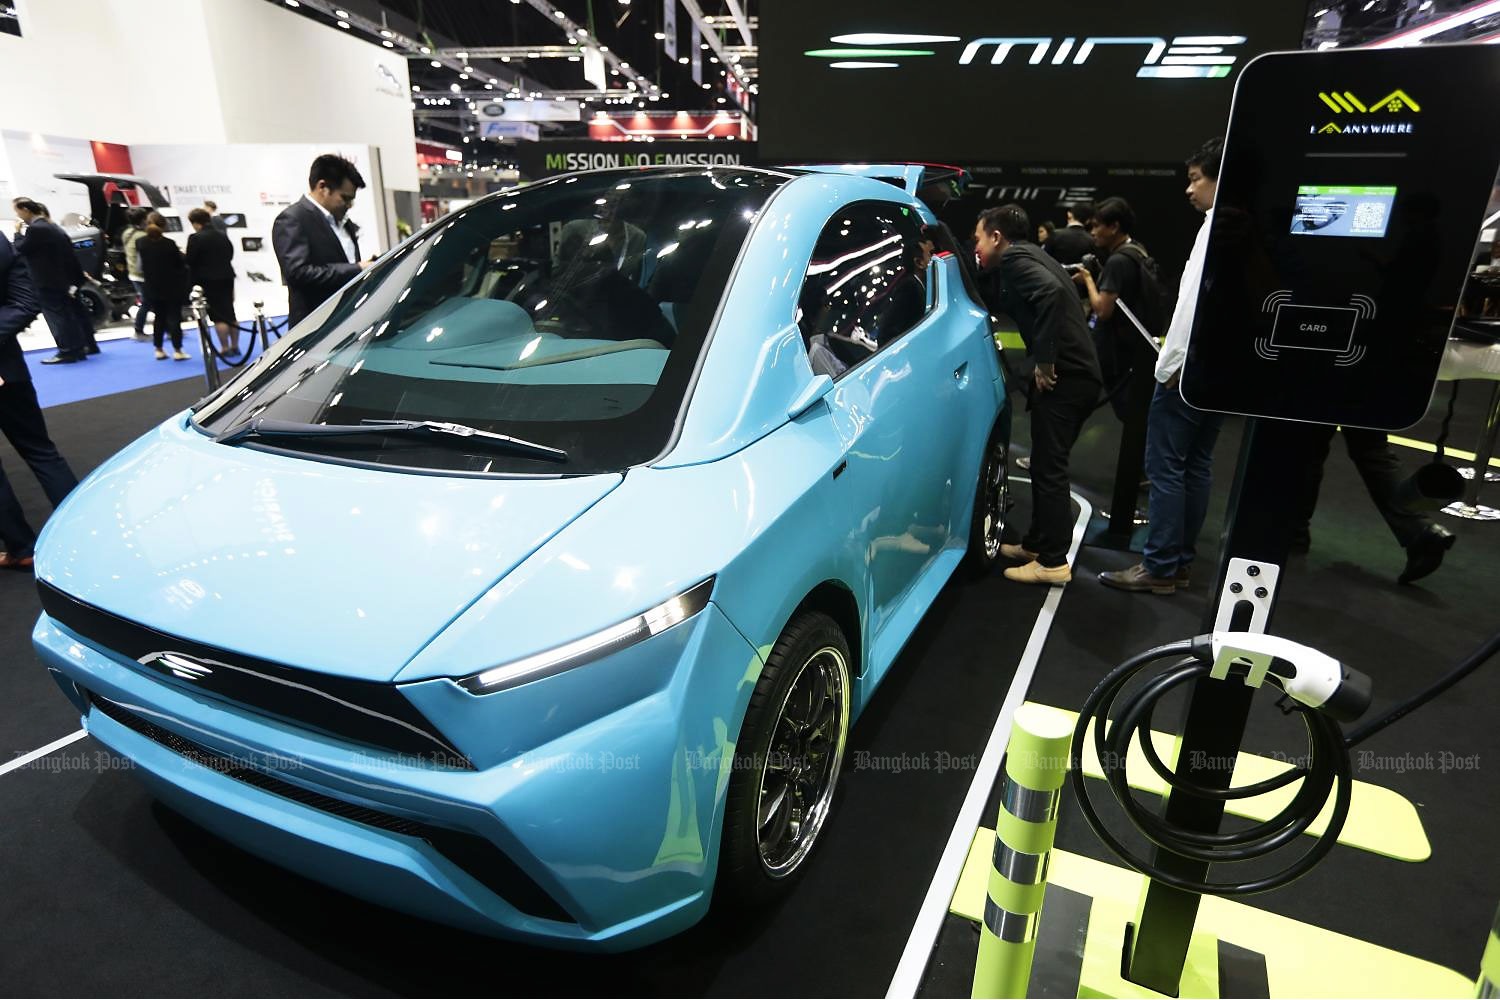 A Mine Mobility car prototype at a Bangkok International Motor Show. EVs were expected to drive EA's revenue and net profit in 2020. (Photo by Patipat Janthong)